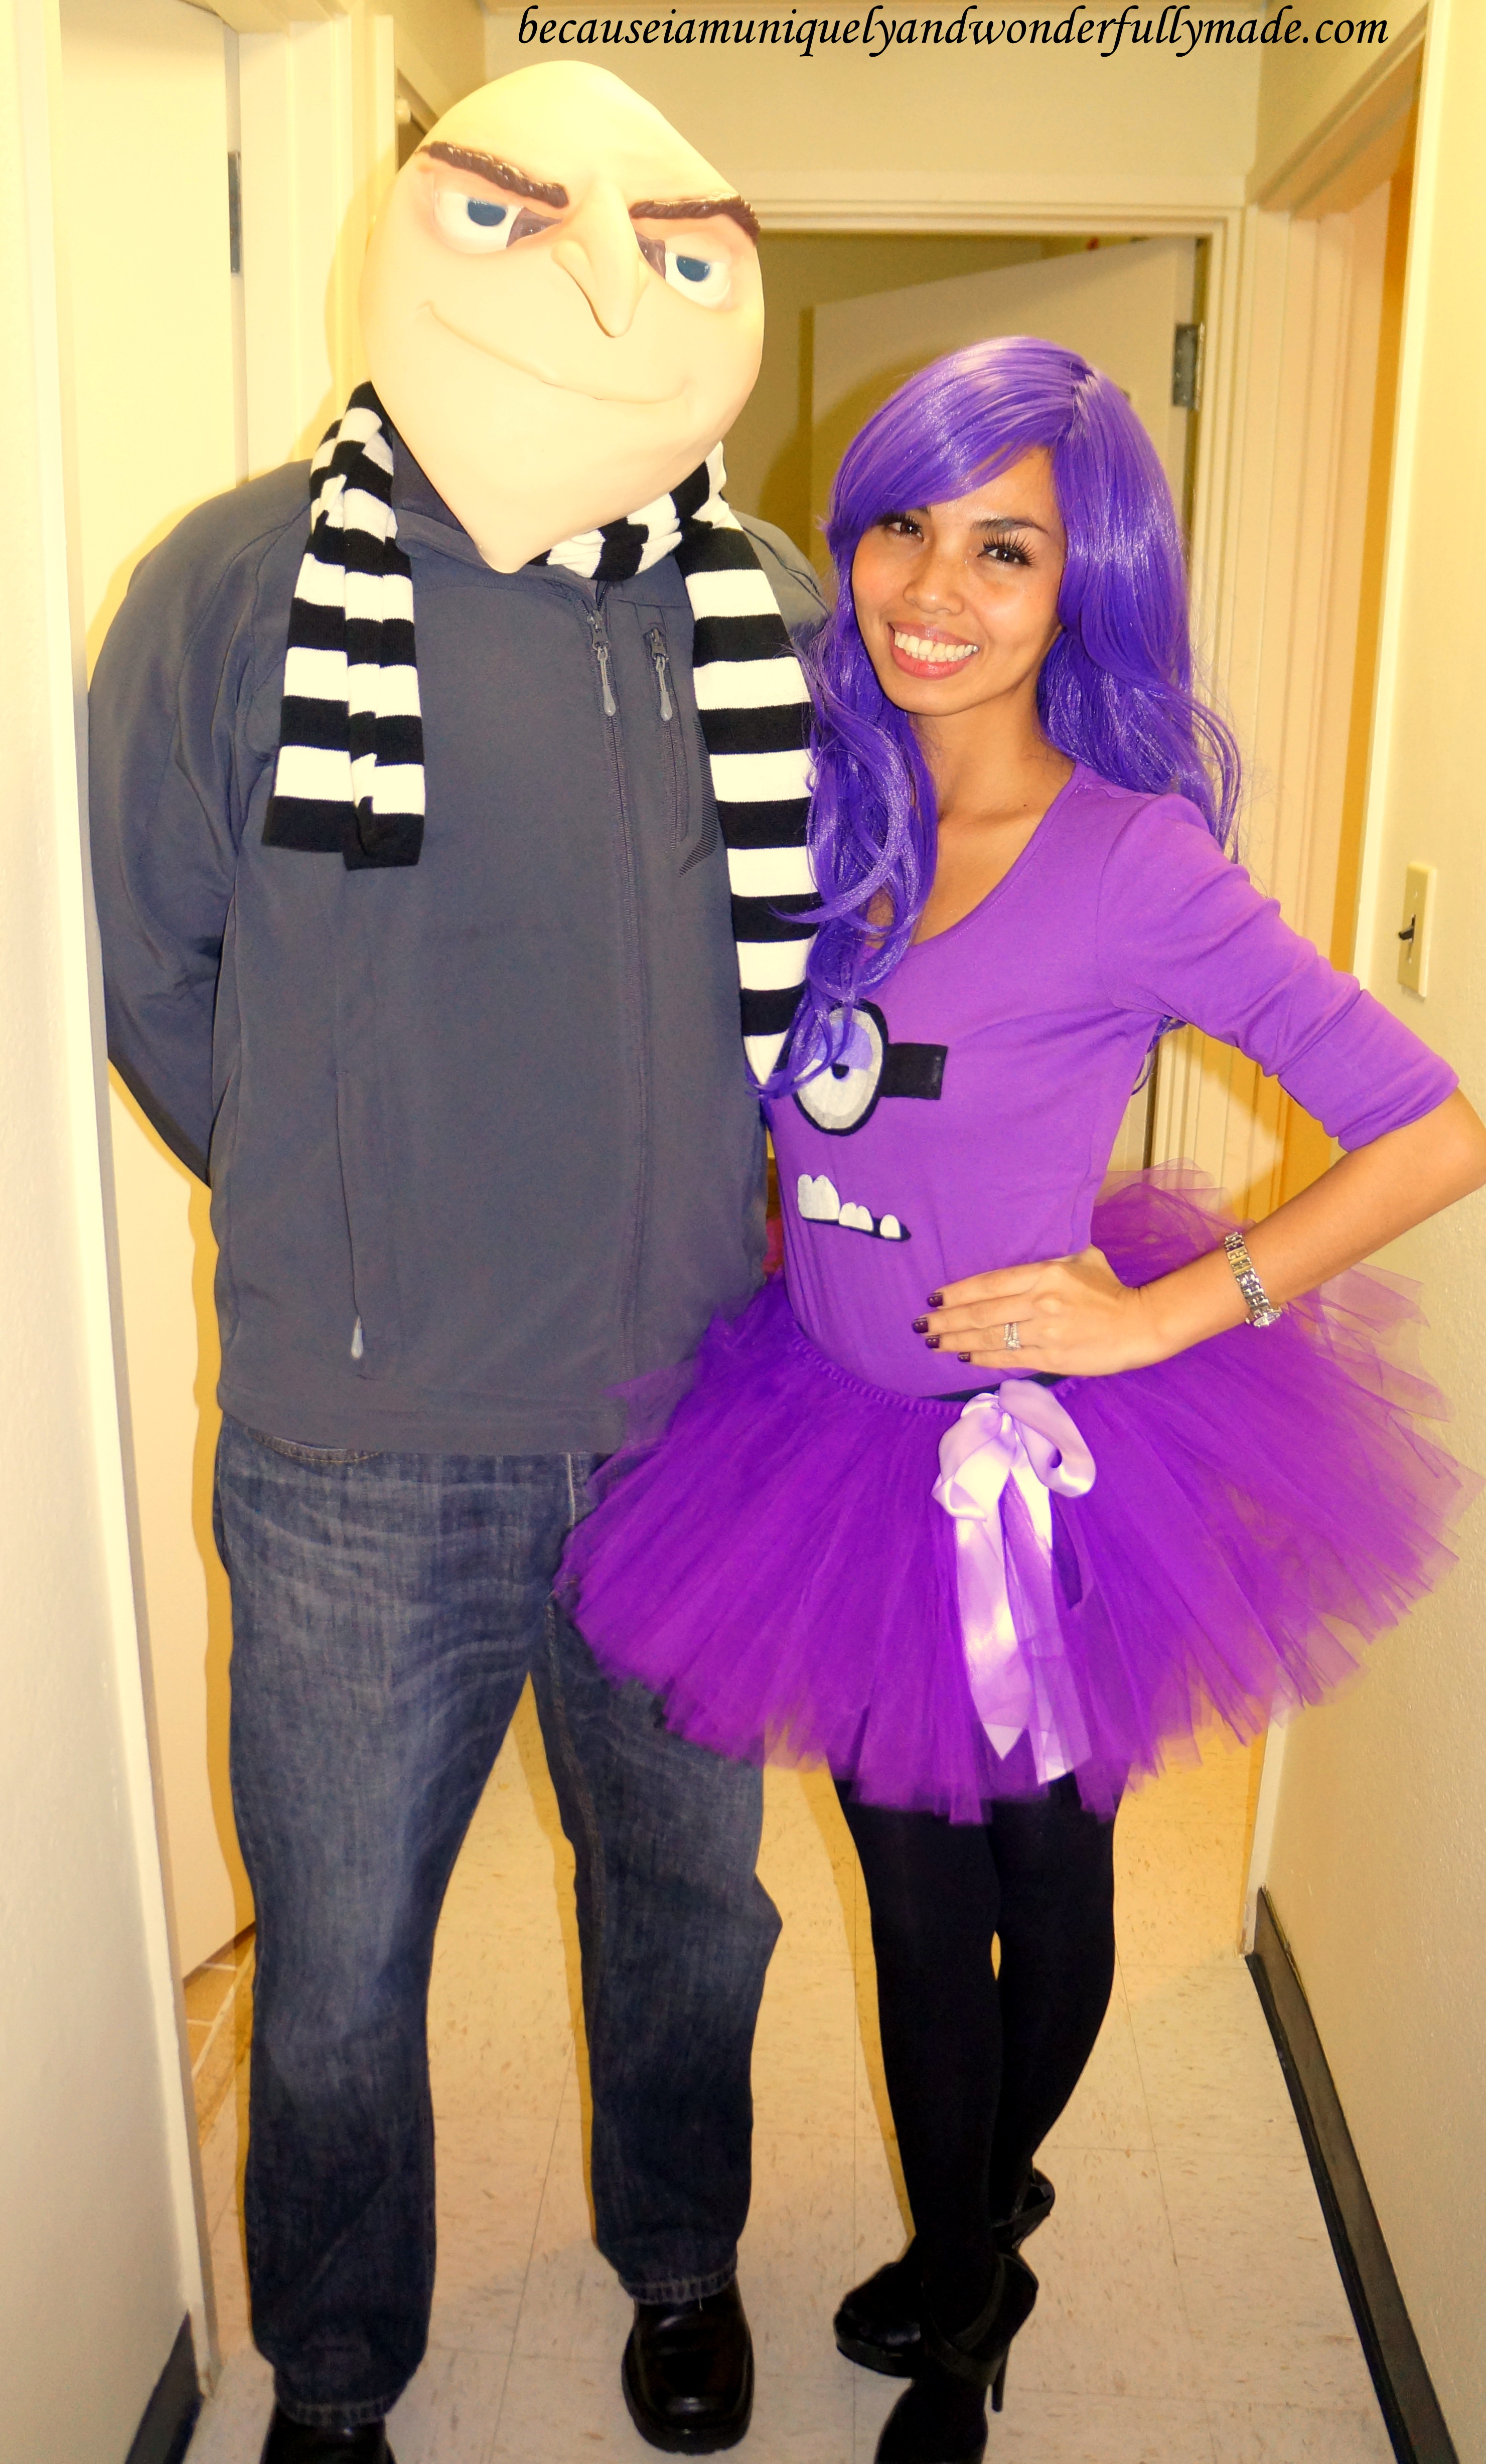 Hubby and I as Gru and his Purple Evil Minion from Despicable Me movie for Halloween  sc 1 st  i am uniquely and wonderfully made. & Despicable Me Gru and Purple Minion on Halloween 2013 u2013 Okinawa ...